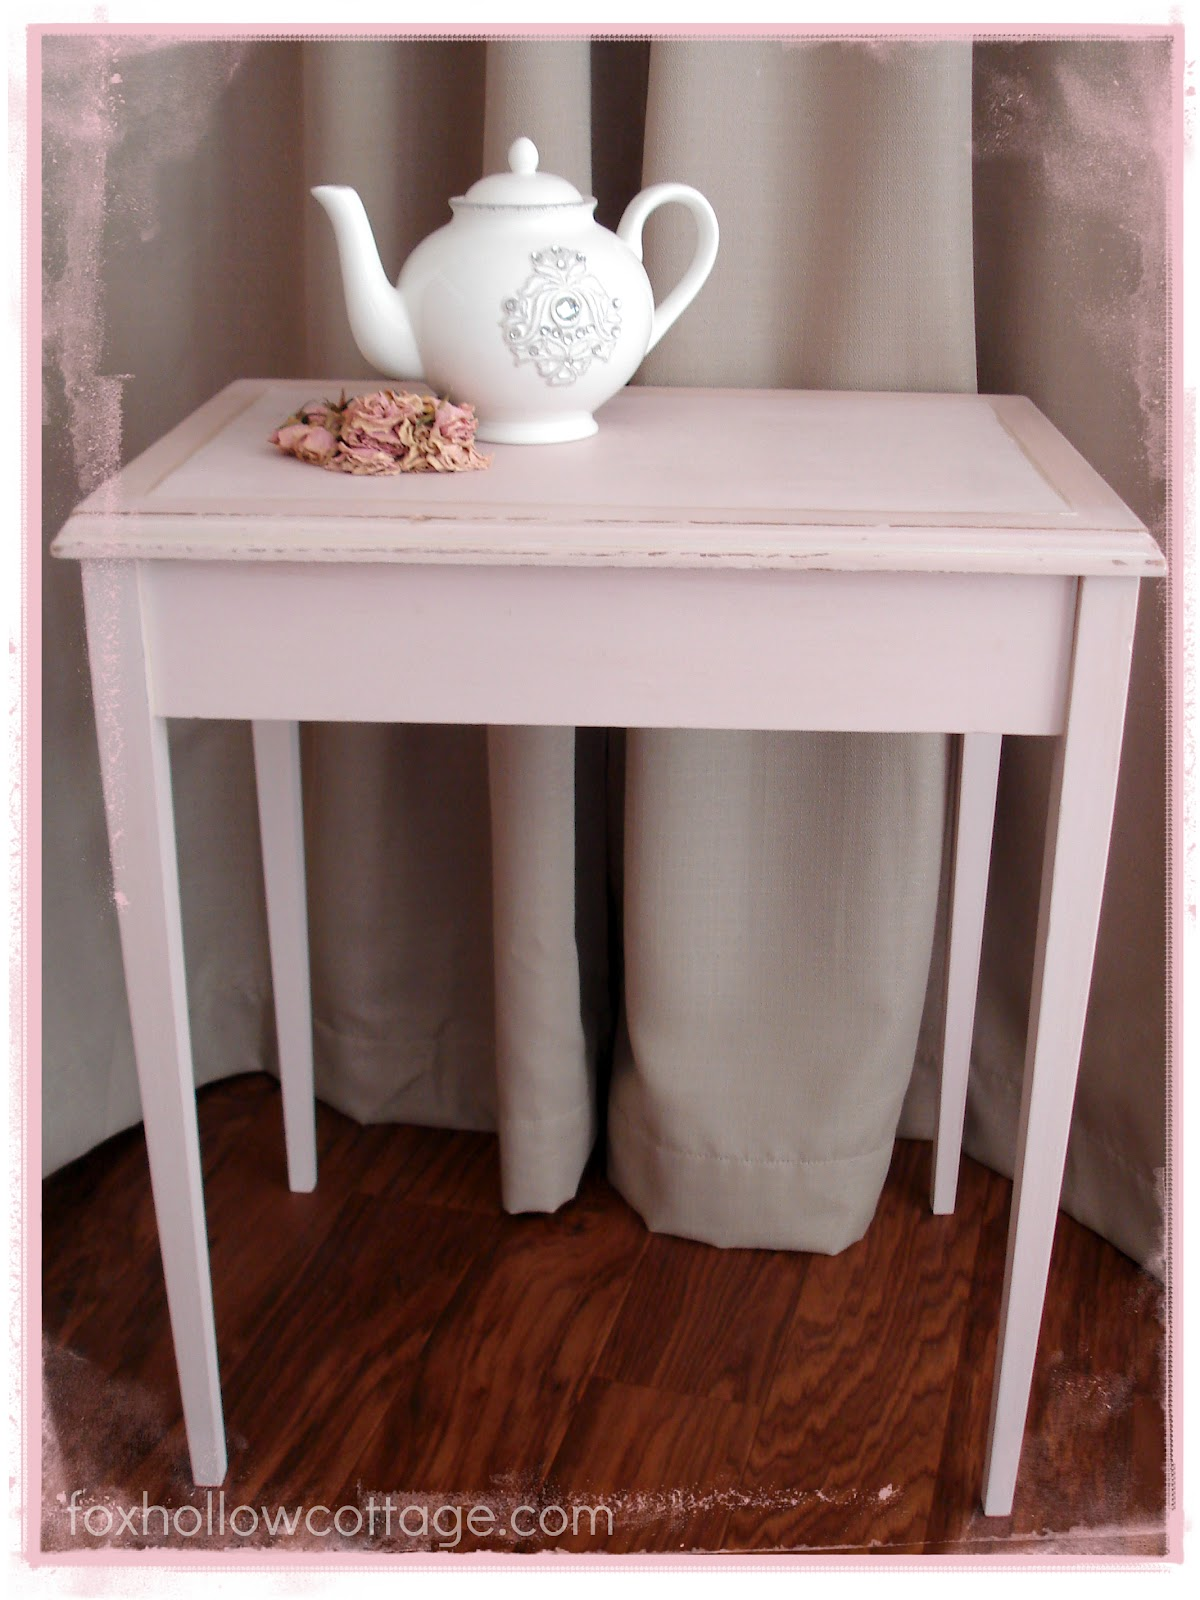 shabby vintage nesting table makeover with maison blanche fox hollow cottage. Black Bedroom Furniture Sets. Home Design Ideas